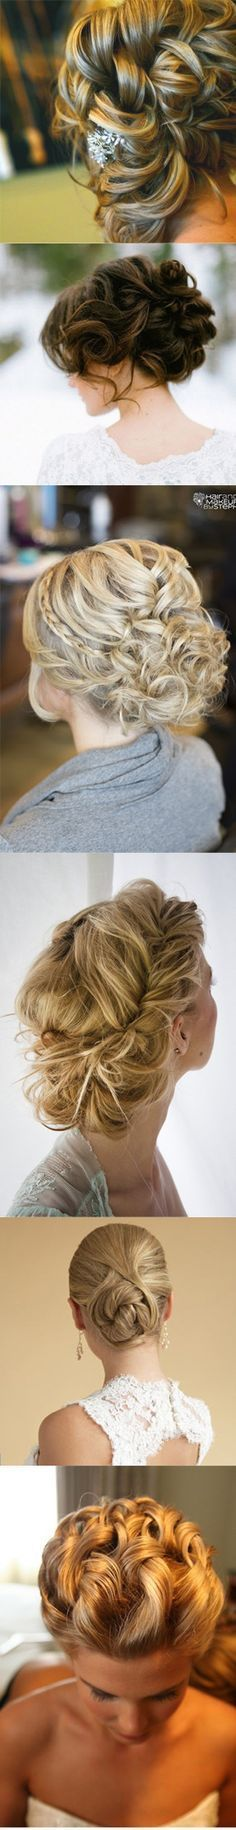 Bridal Updos - what to decorate them with - hairvines, hairpins and slides, and combs.